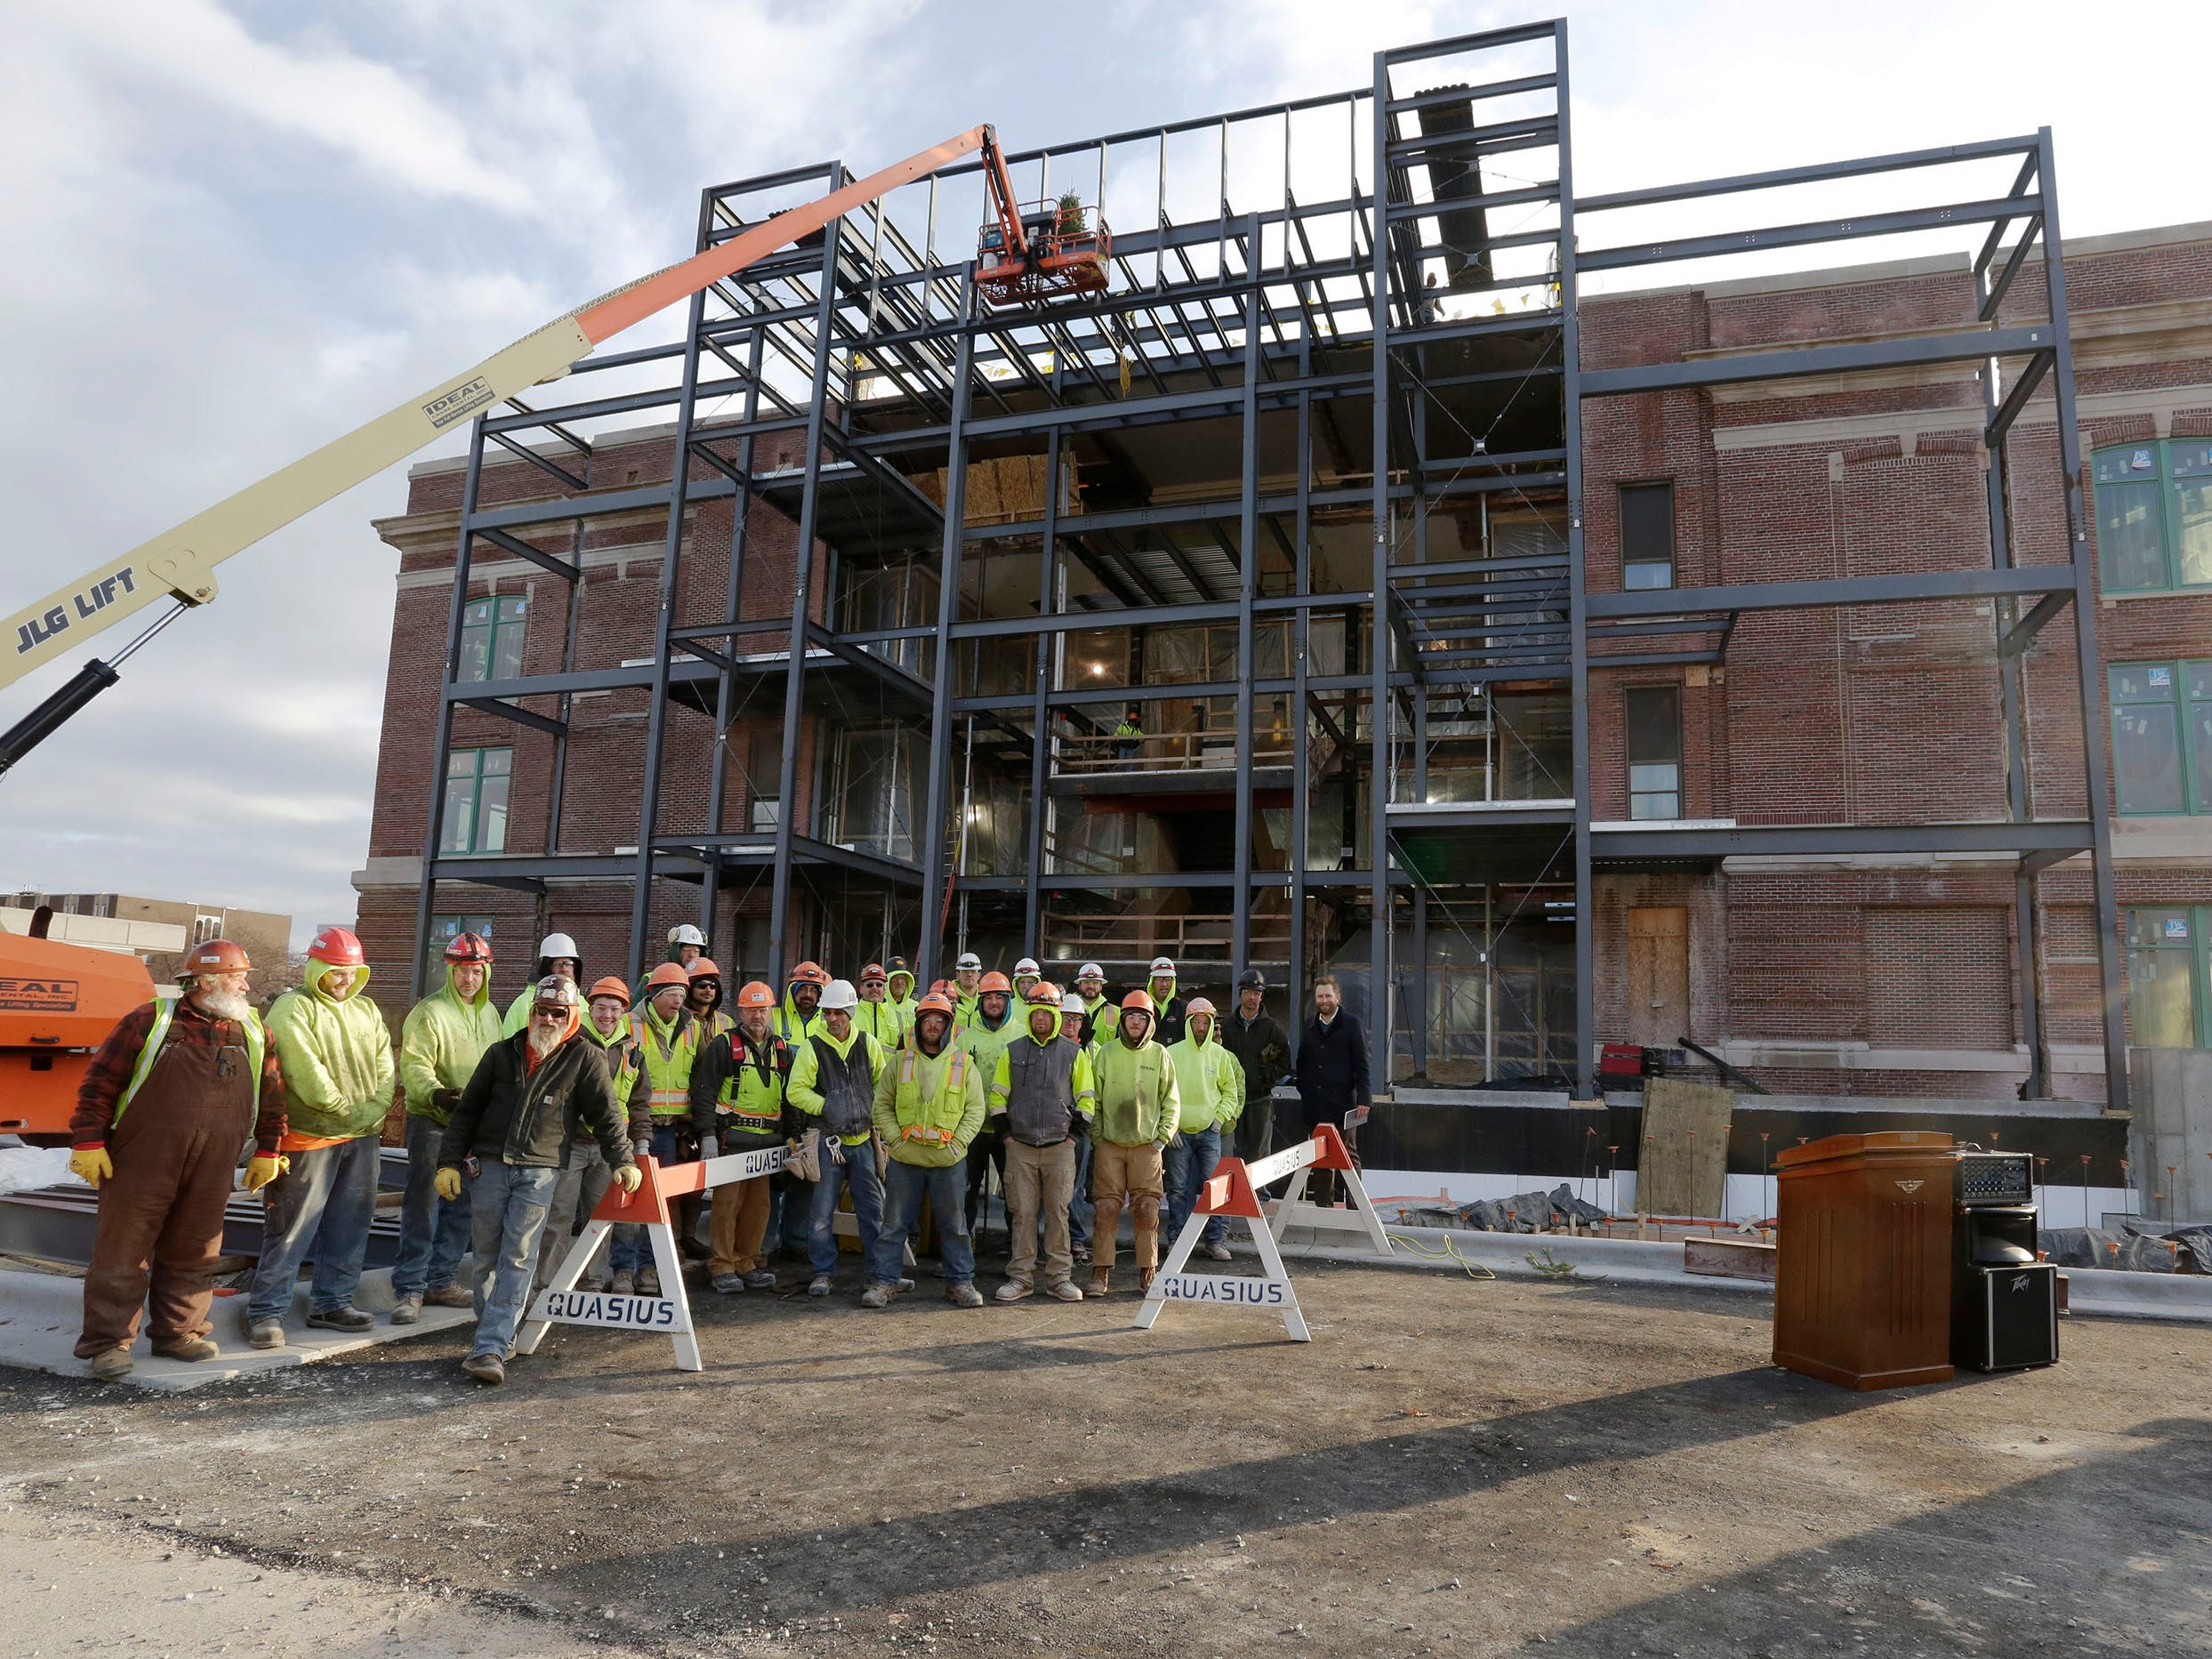 Construction workers working on the Sheboygan City Hall renovation project pose in front of the building, Wednesday, December 5, 2018, in Sheboygan, Wis.